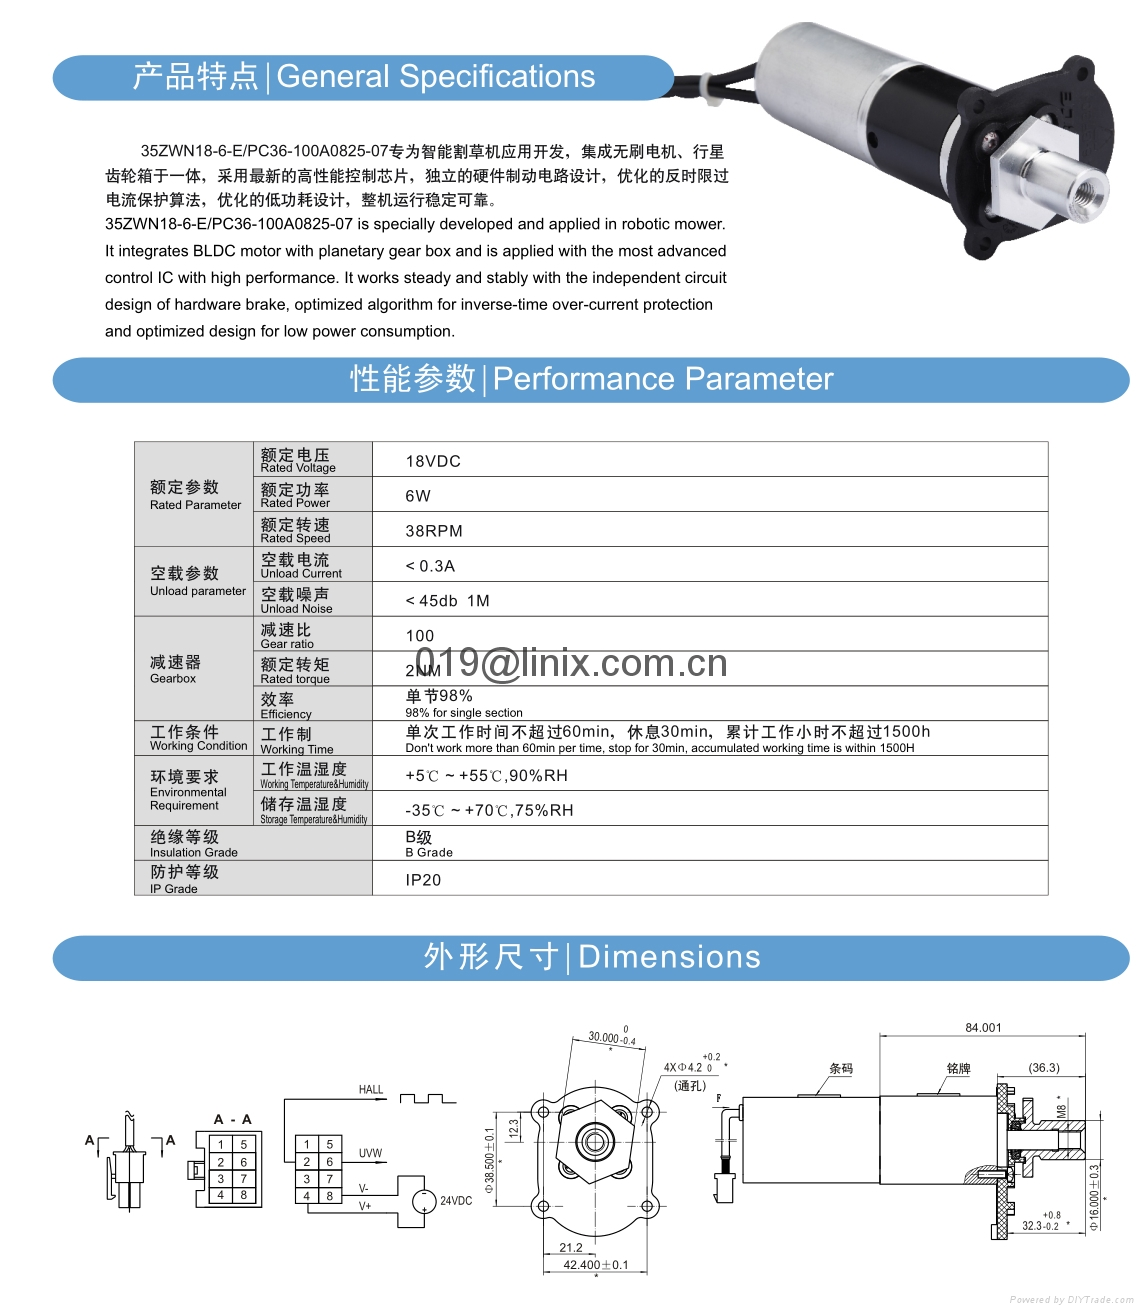 Integrated BLDC Motor Specially for Robotic Mower 2